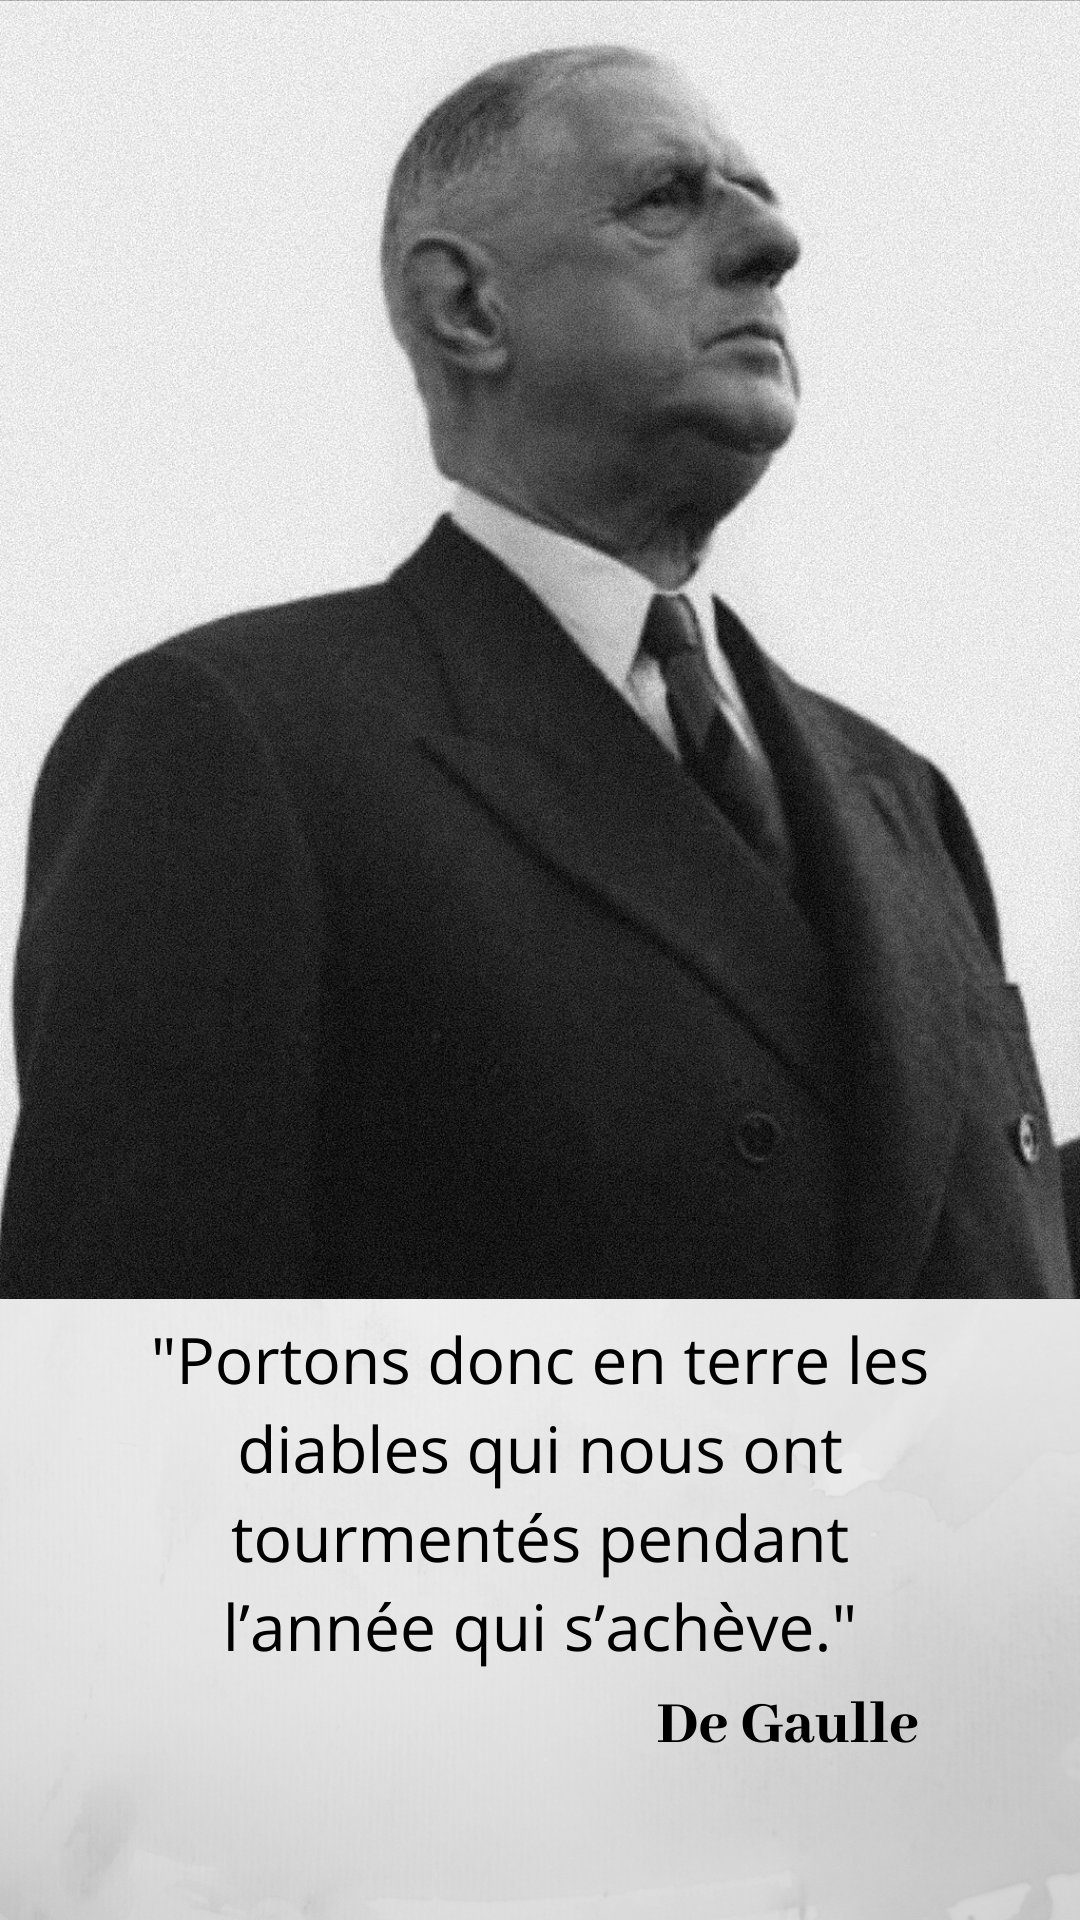 Pour De Gaulle Il Faut Que La Defense De La France Soit Francaise Souverainete Oblige Citation De Gaulle Citations Intelligentes Citation Politique